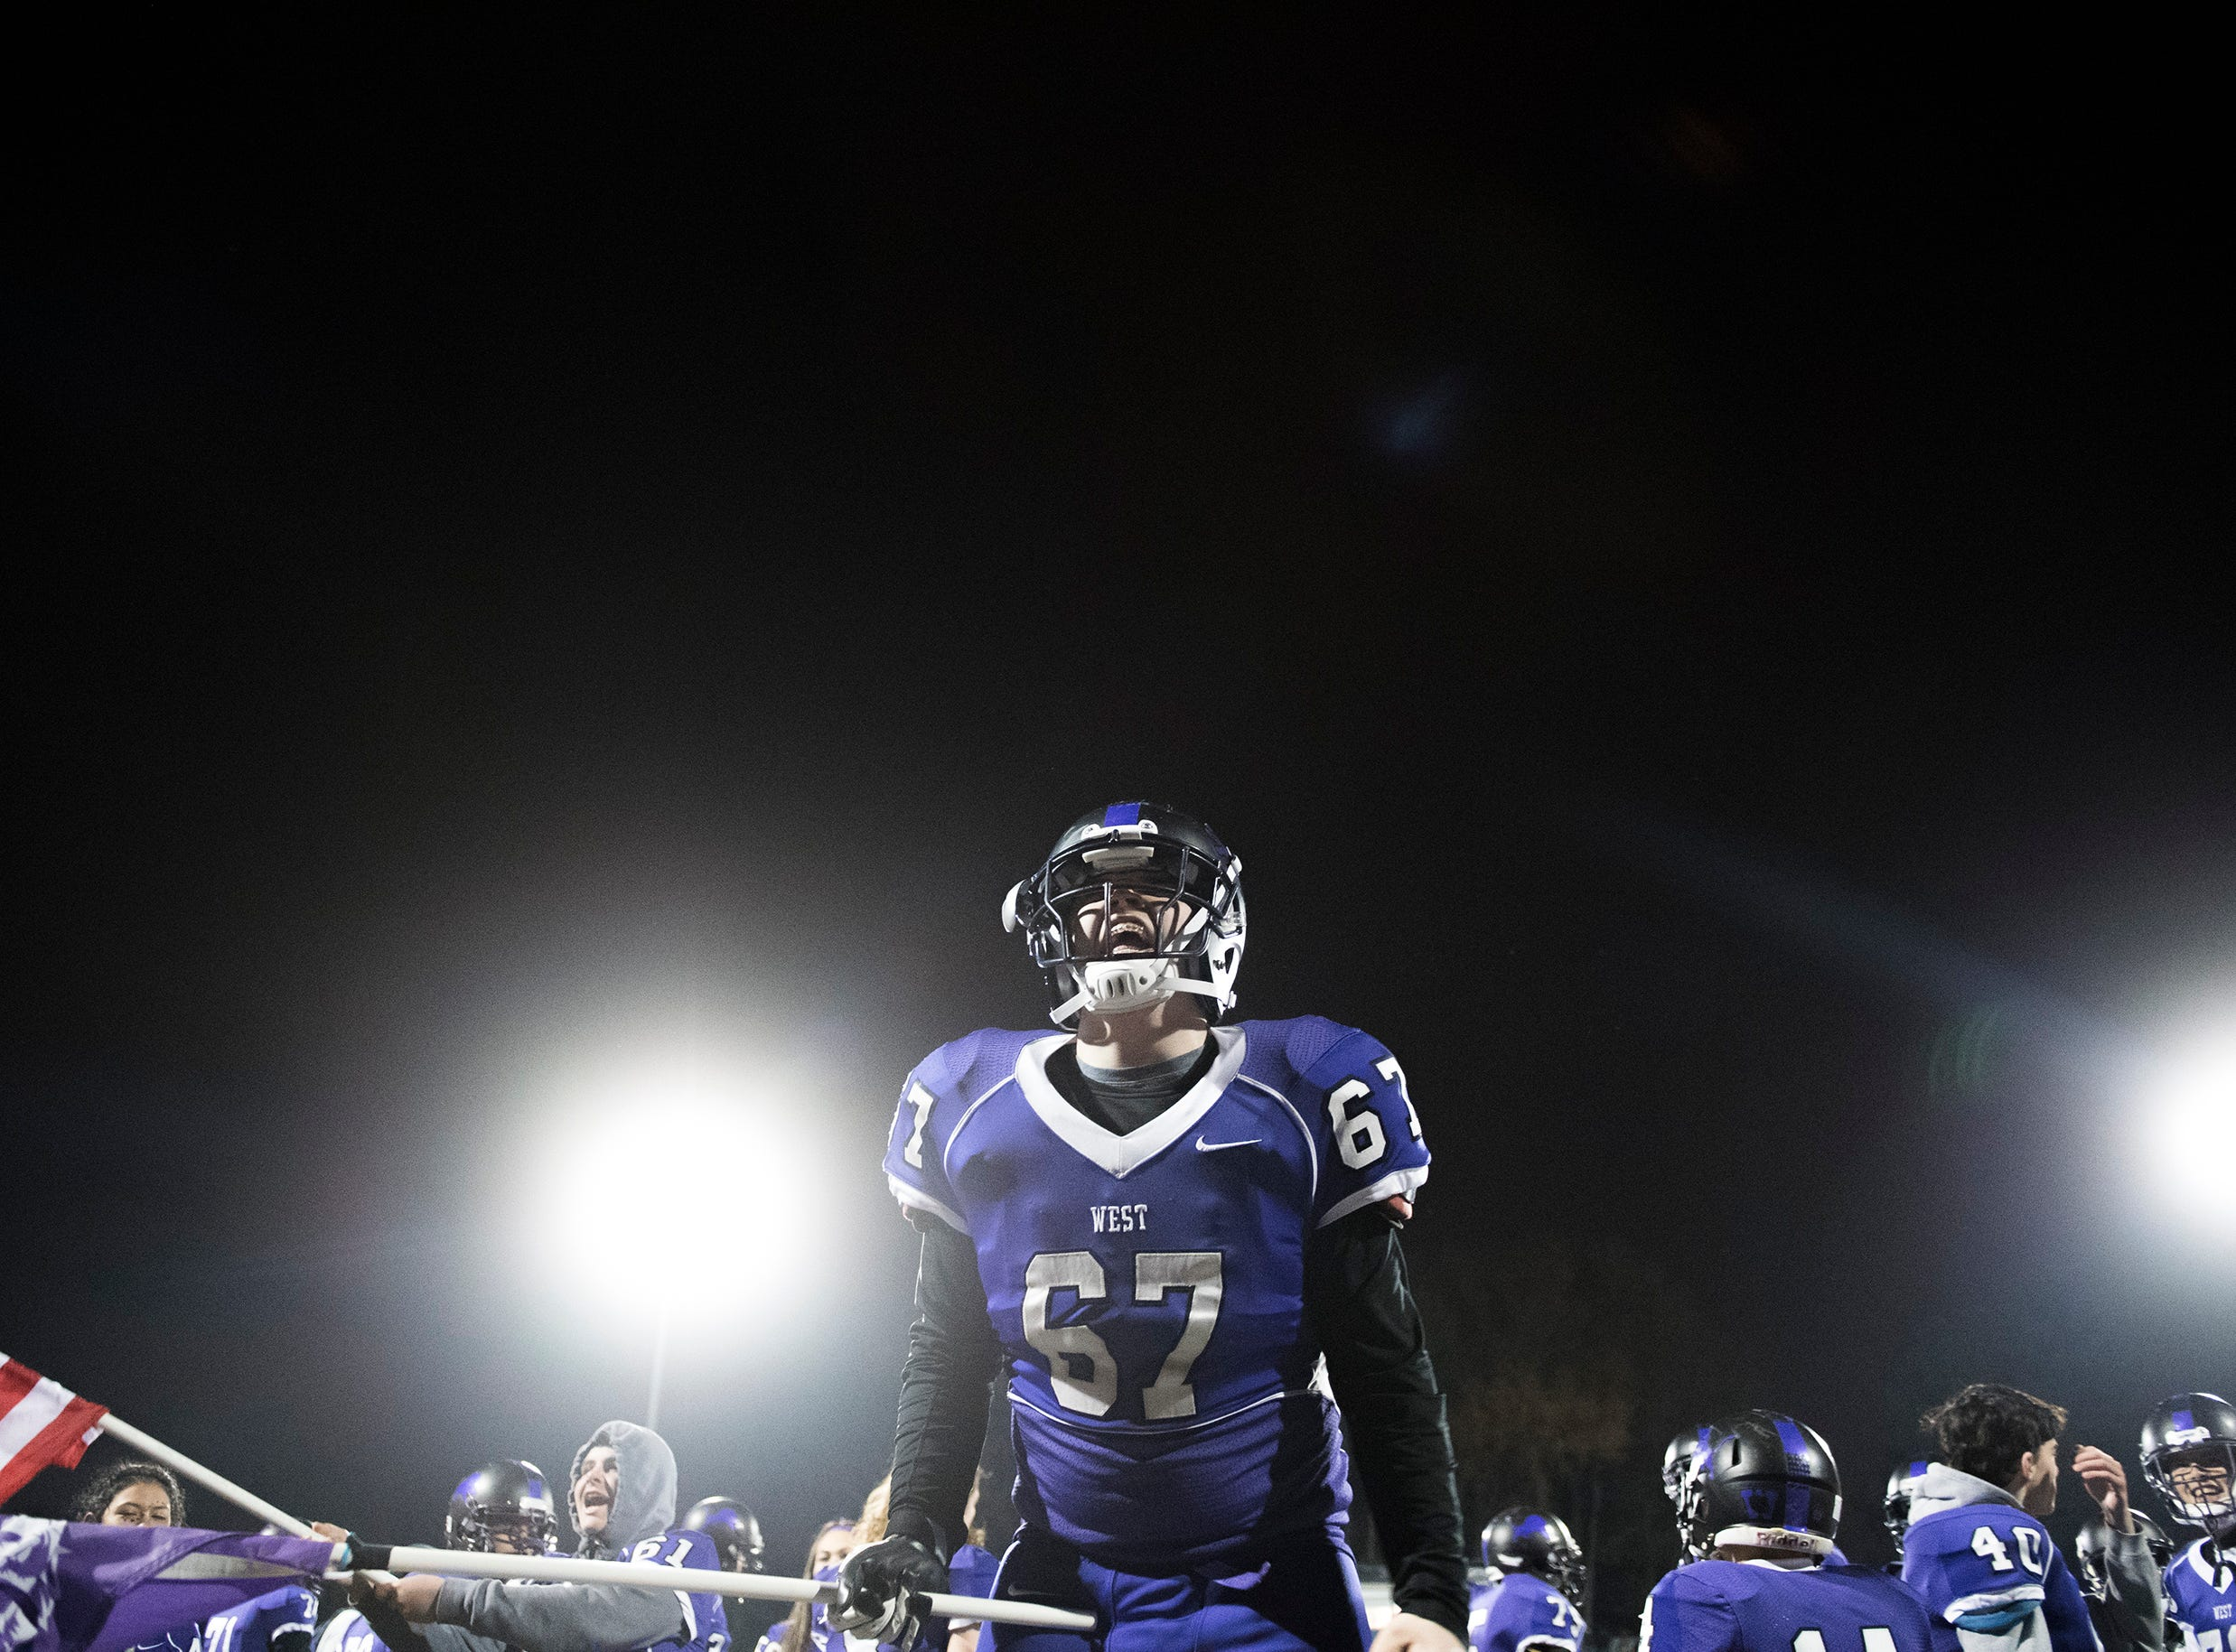 West's Seamus Curran (67) cheers as West seals a victory during an annual East-West game Wednesday, Nov. 21, 2018 at Cherry Hill West High School in Cherry Hill, N.J. West won 22-7.